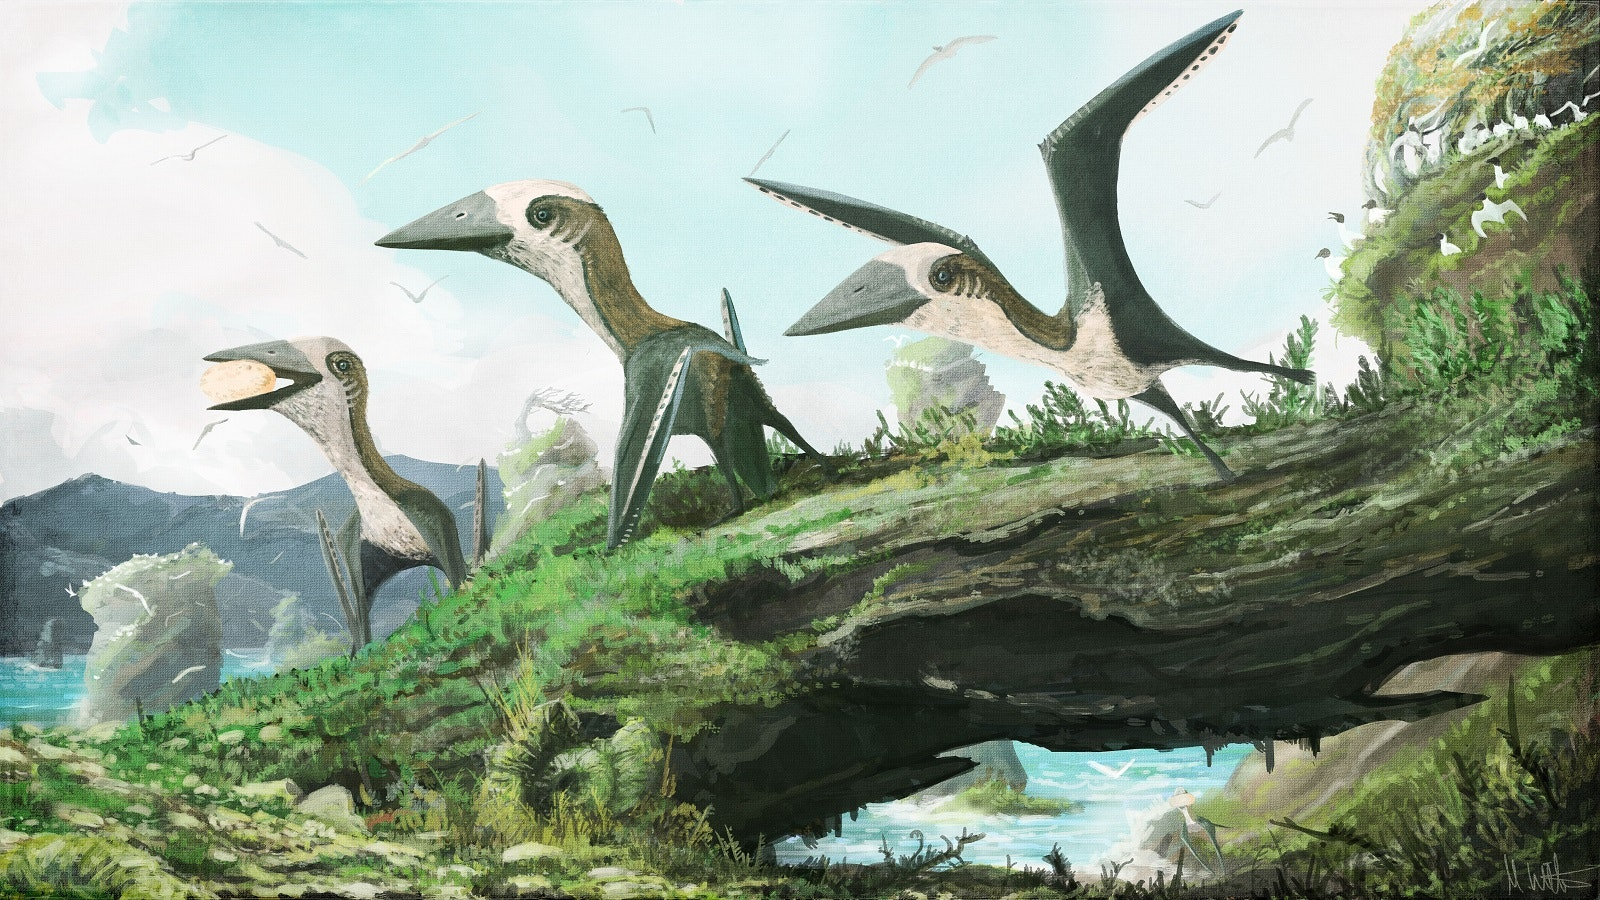 Our new pterosaur fossil shows birds and small reptiles flew side by side